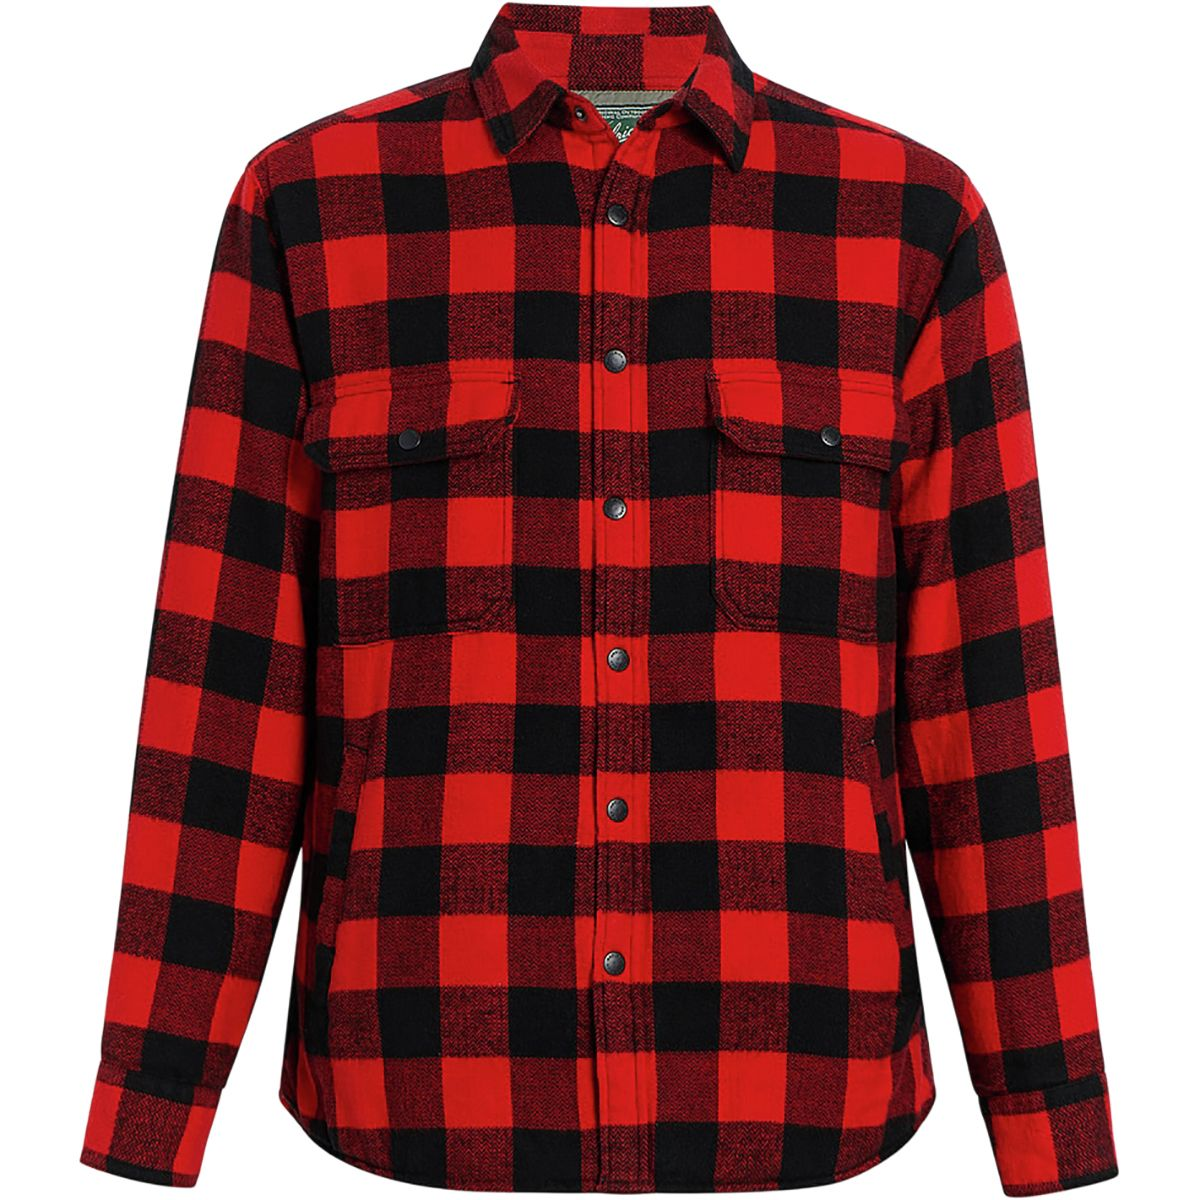 Woolrich Oxbow Bend Lined Jac Shirt - Long-Sleeve - Men